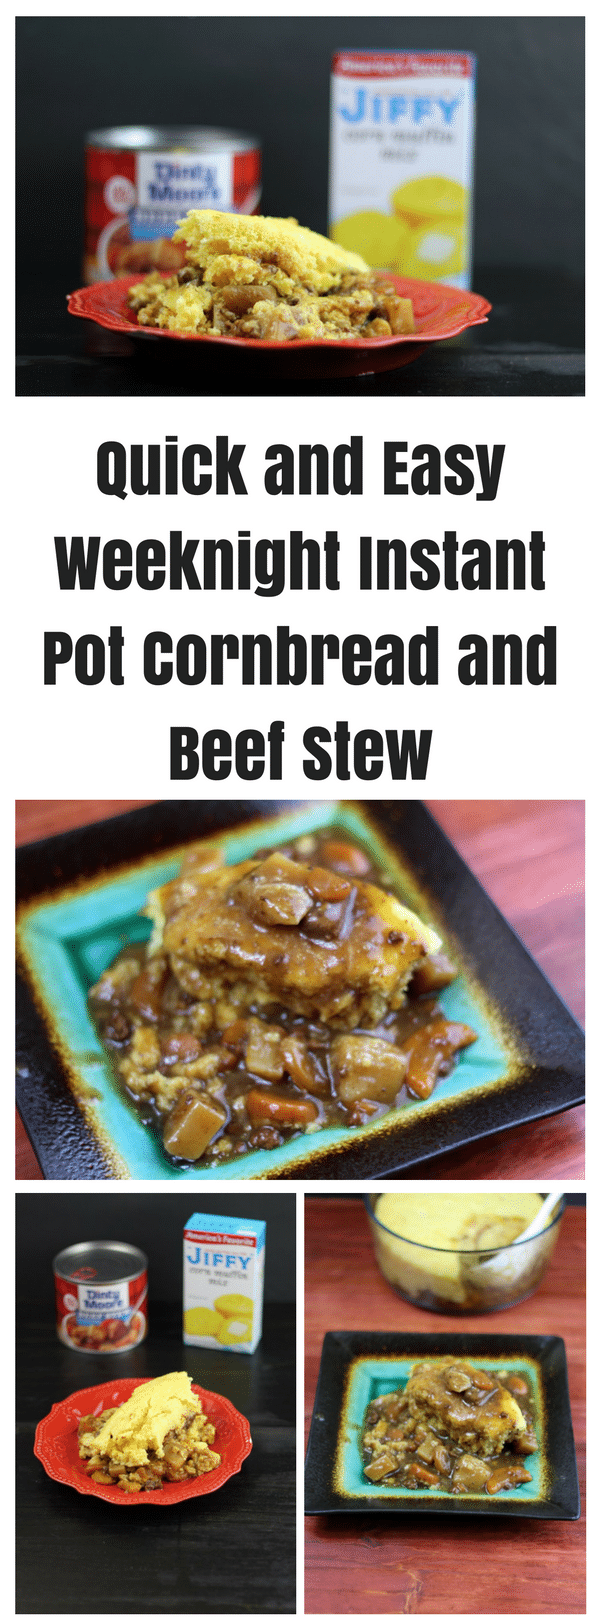 Quick and Easy Weeknight Instant Pot Cornbread and Beef Stew